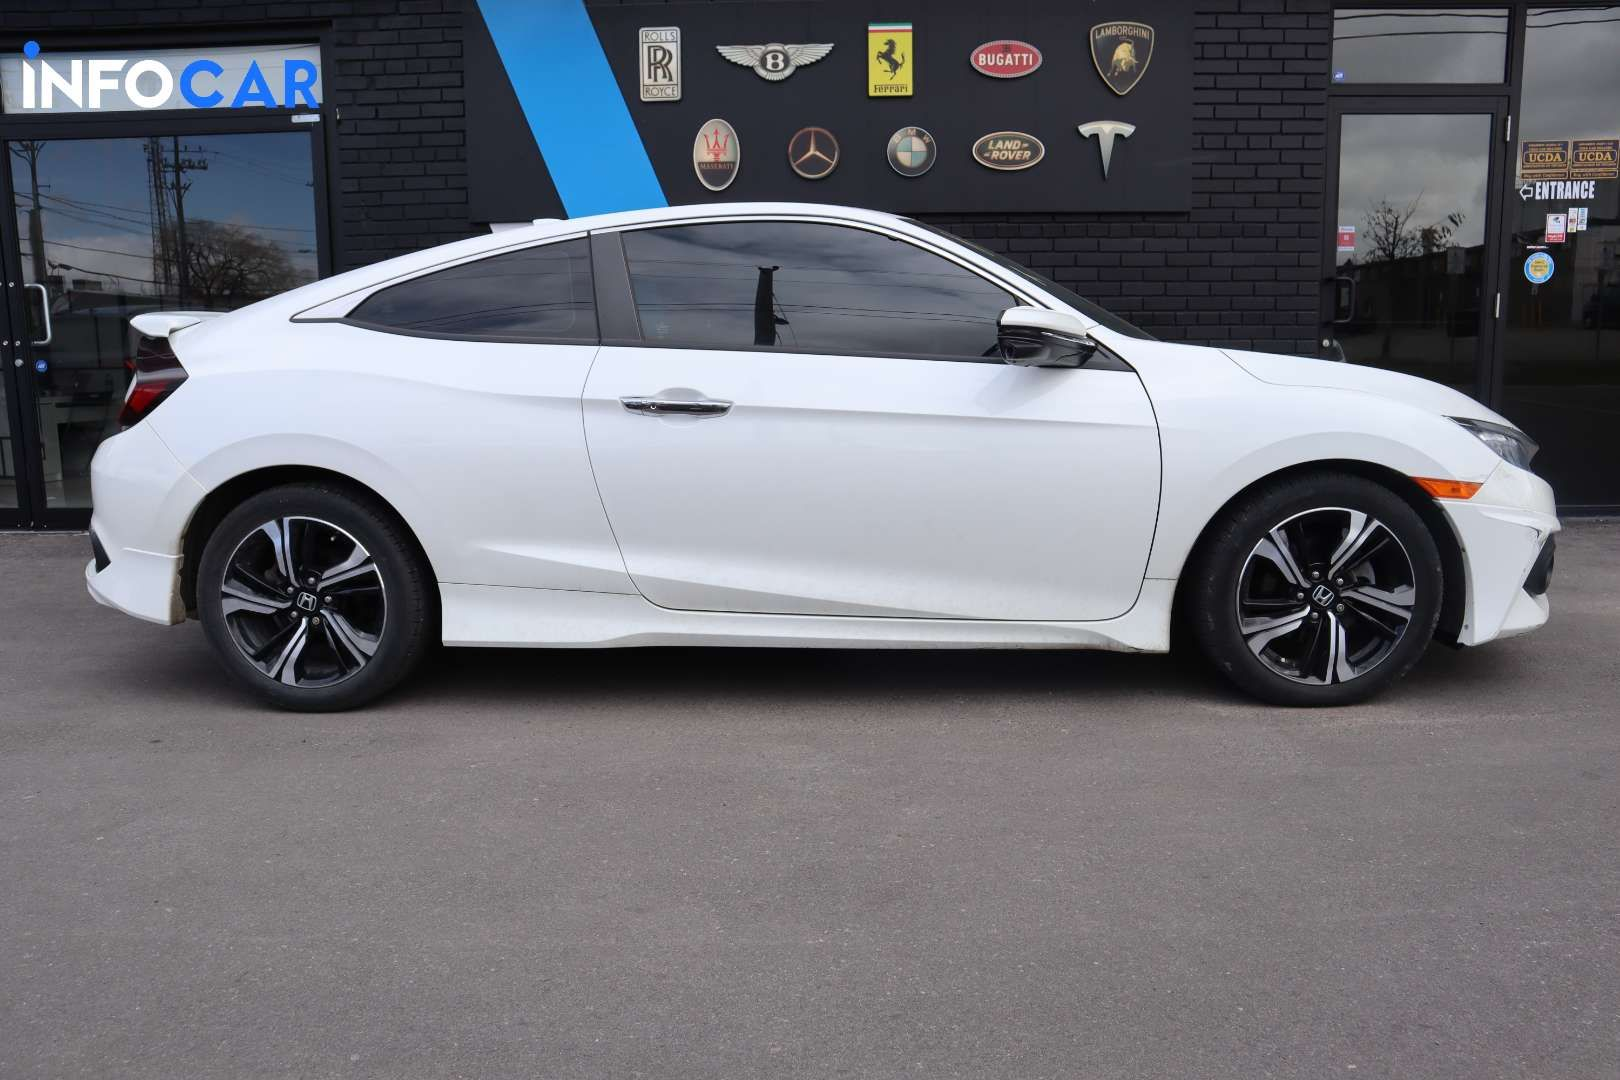 2018 Honda Civic null - INFOCAR - Toronto's Most Comprehensive New and Used Auto Trading Platform